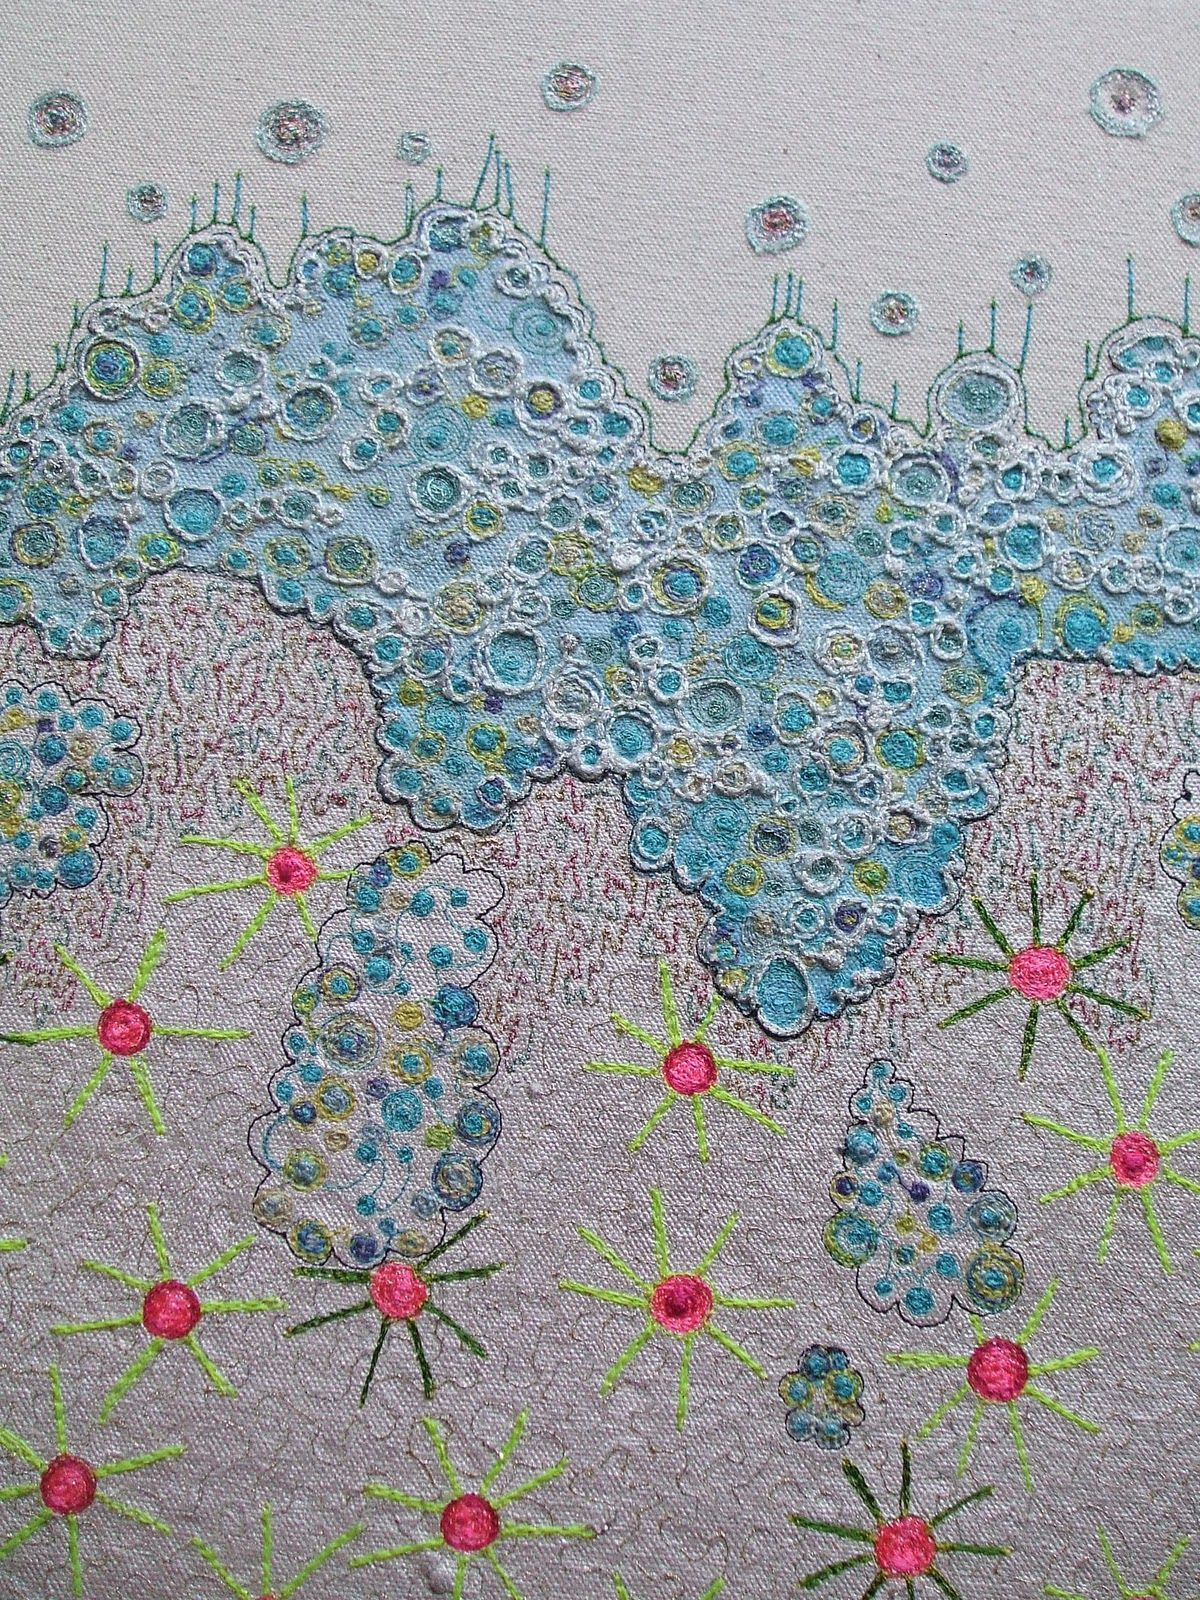 Sewing Machine Stitches, Drop Cloths, Contemporary Embroidery, American  Quilt, Thread Painting,